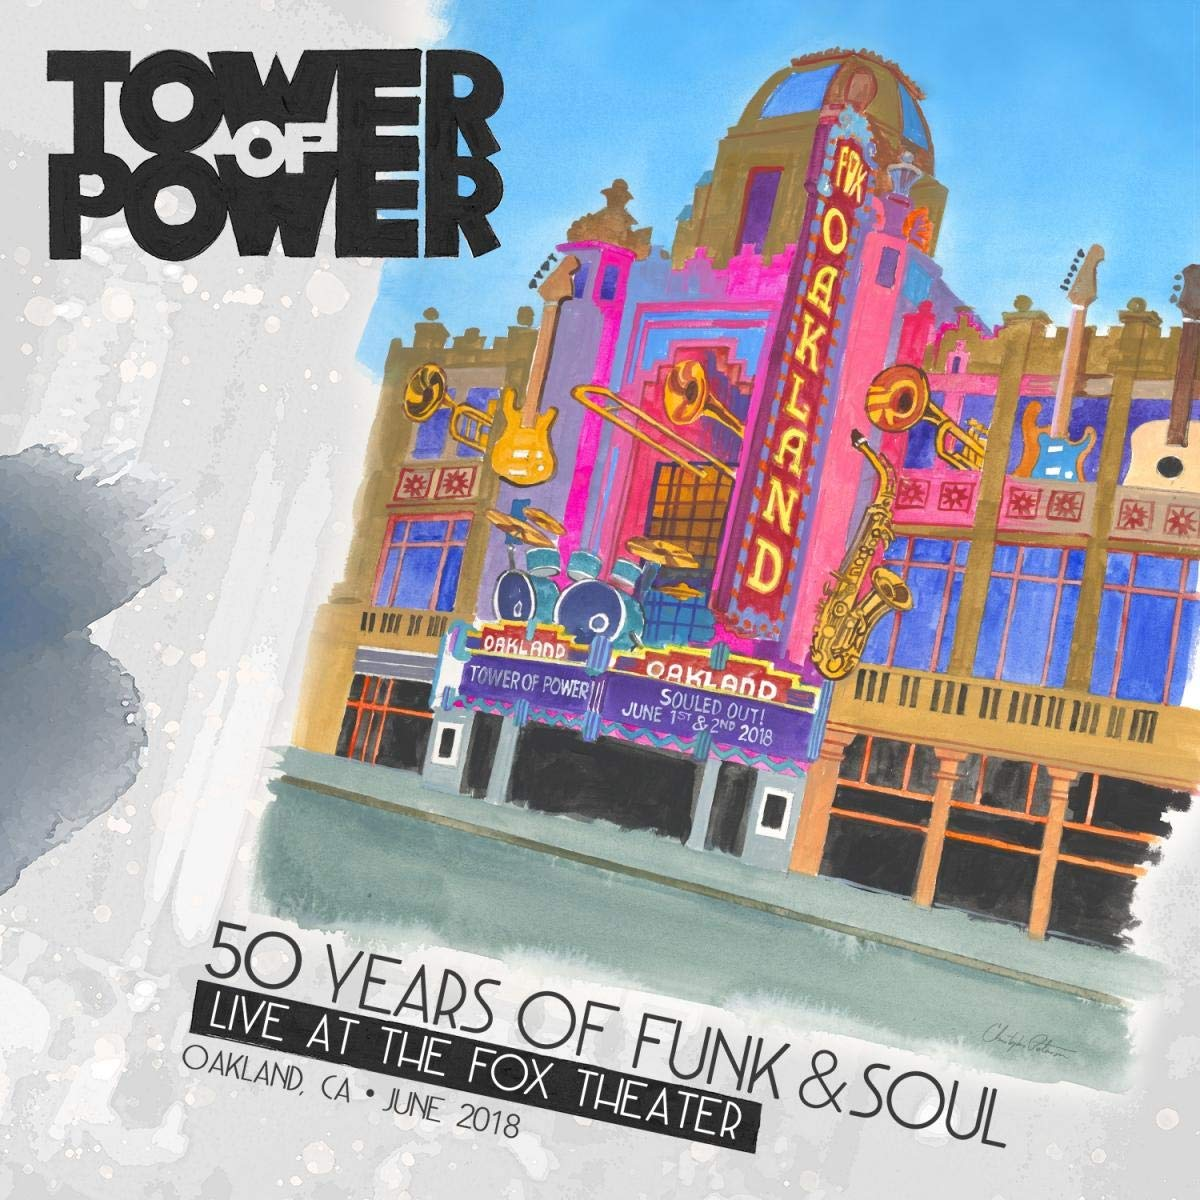 Tower Of Power - CD 50 Years Of Funk & Soul: Live At The Fox Theater